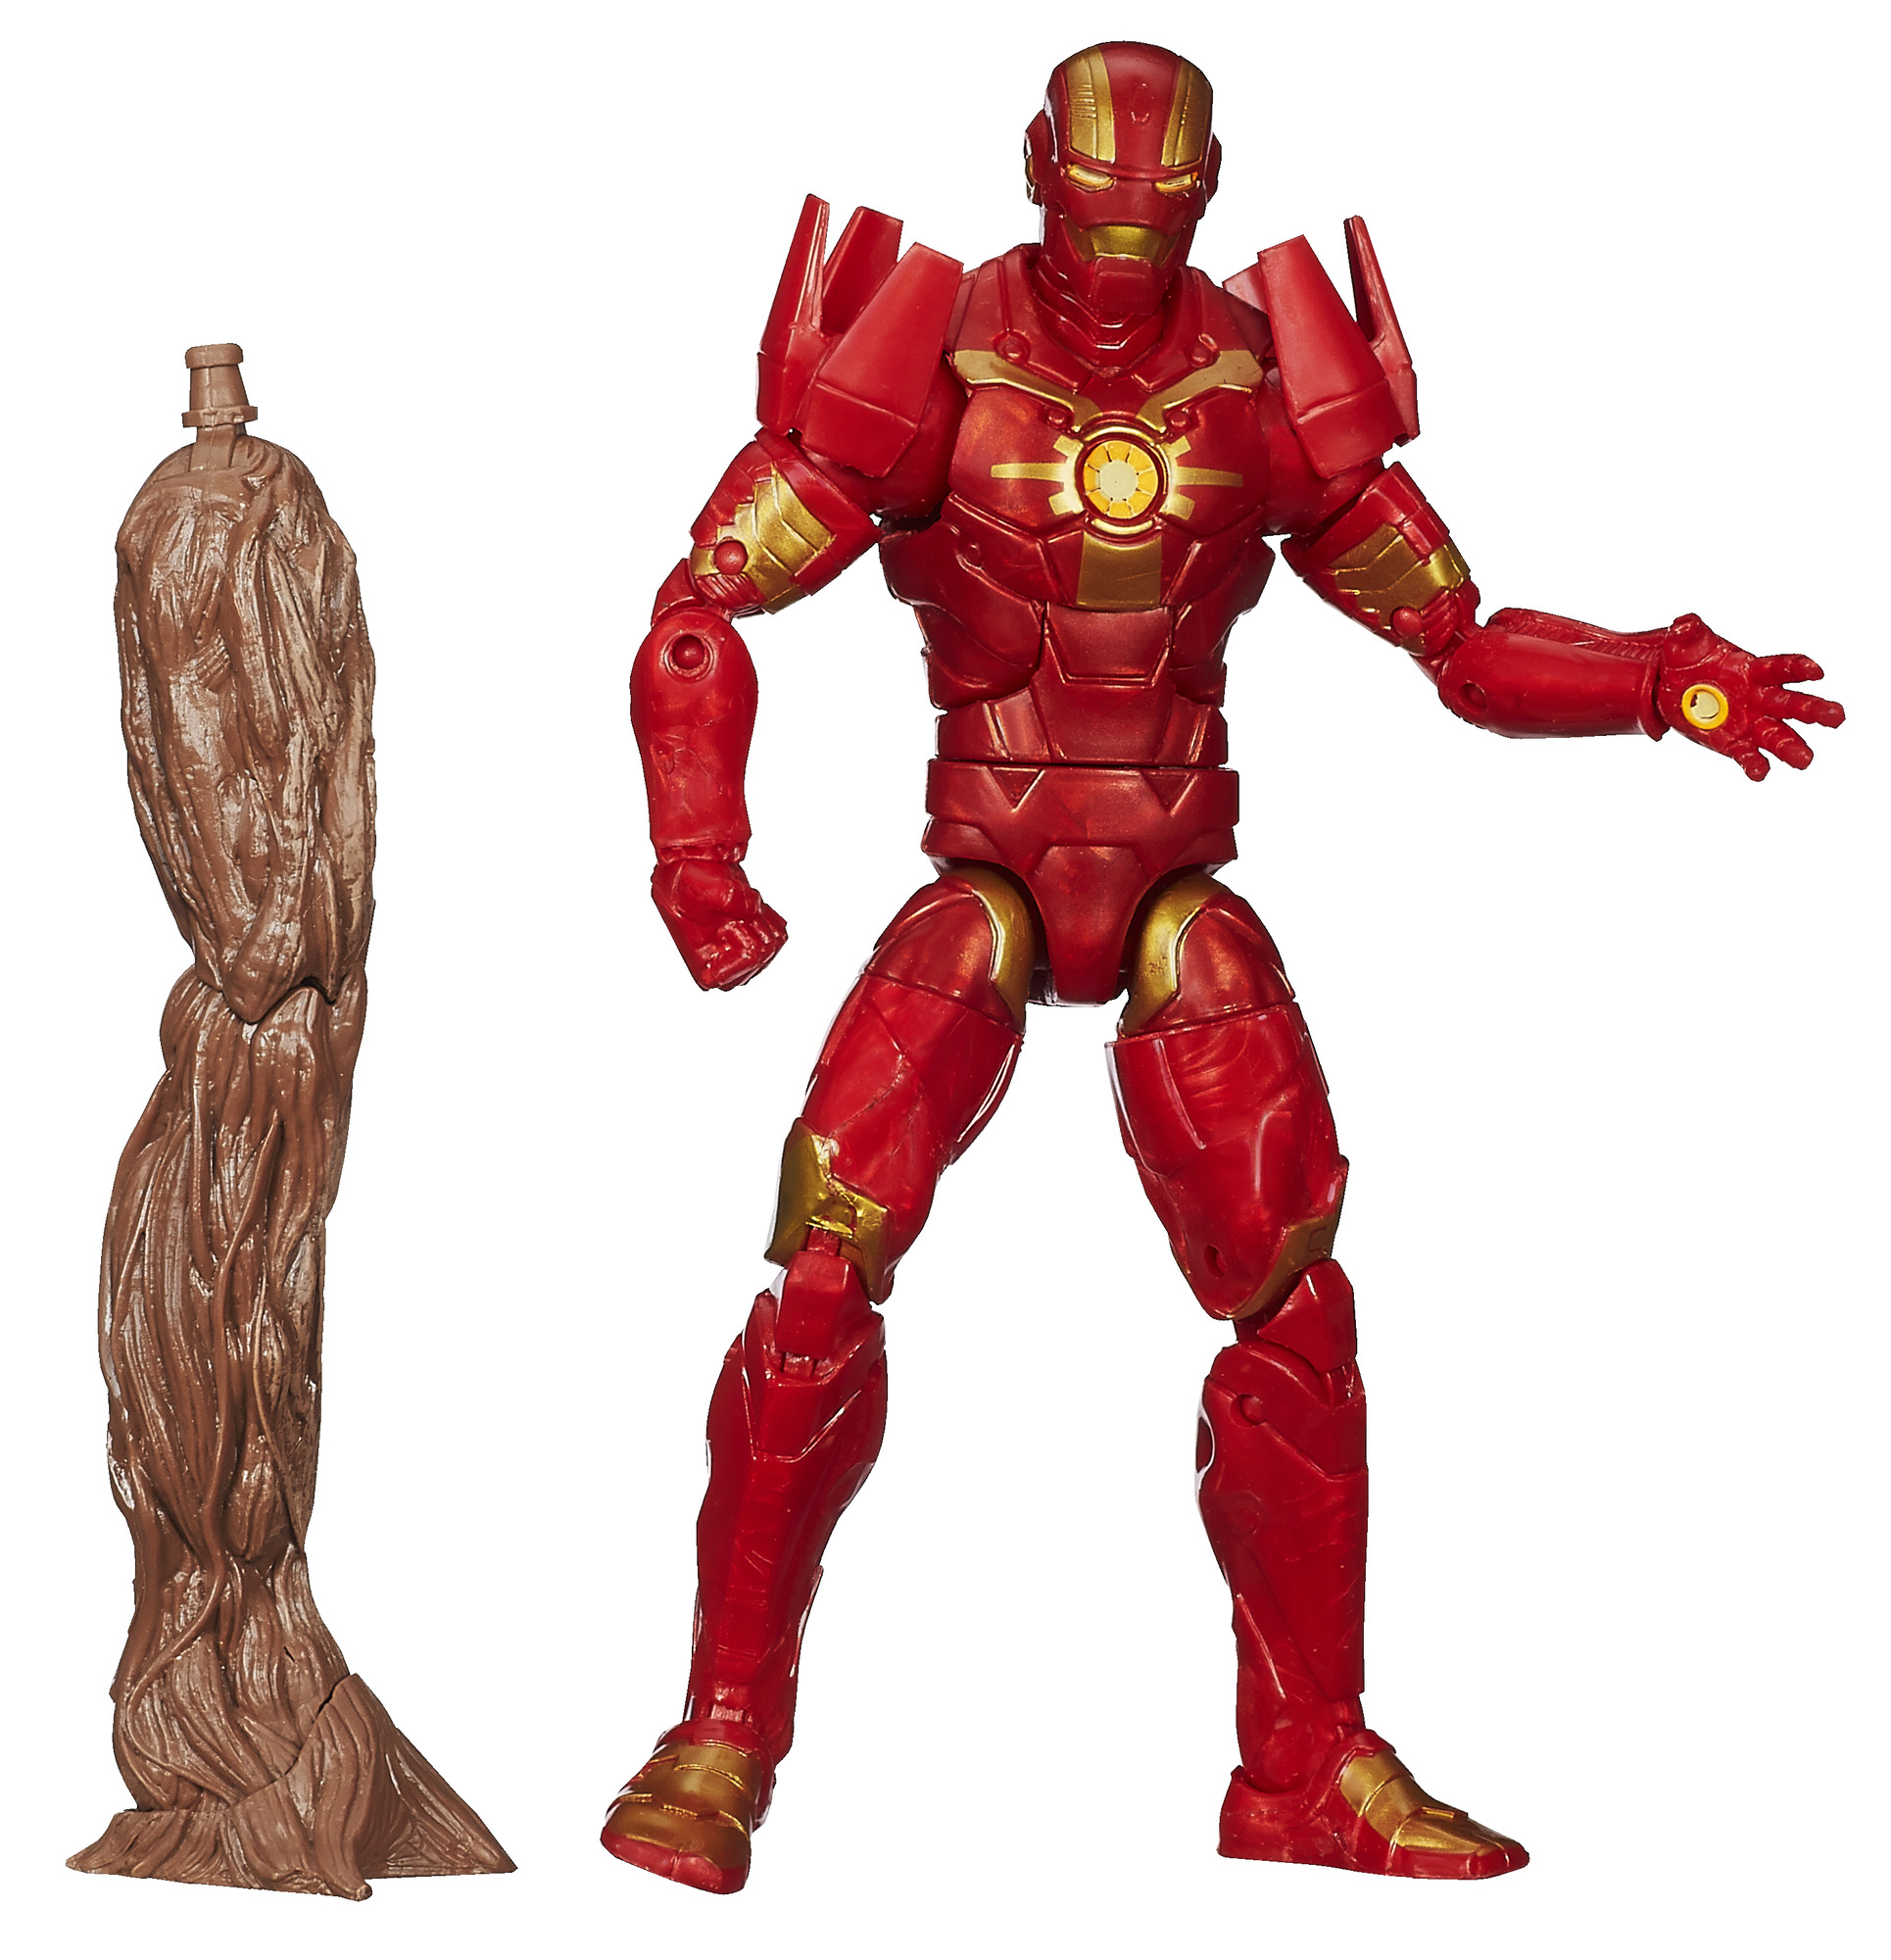 "Marvel Guardians Of The Galaxy Platinum Series Iron Man Figure 6"" Action Figure"